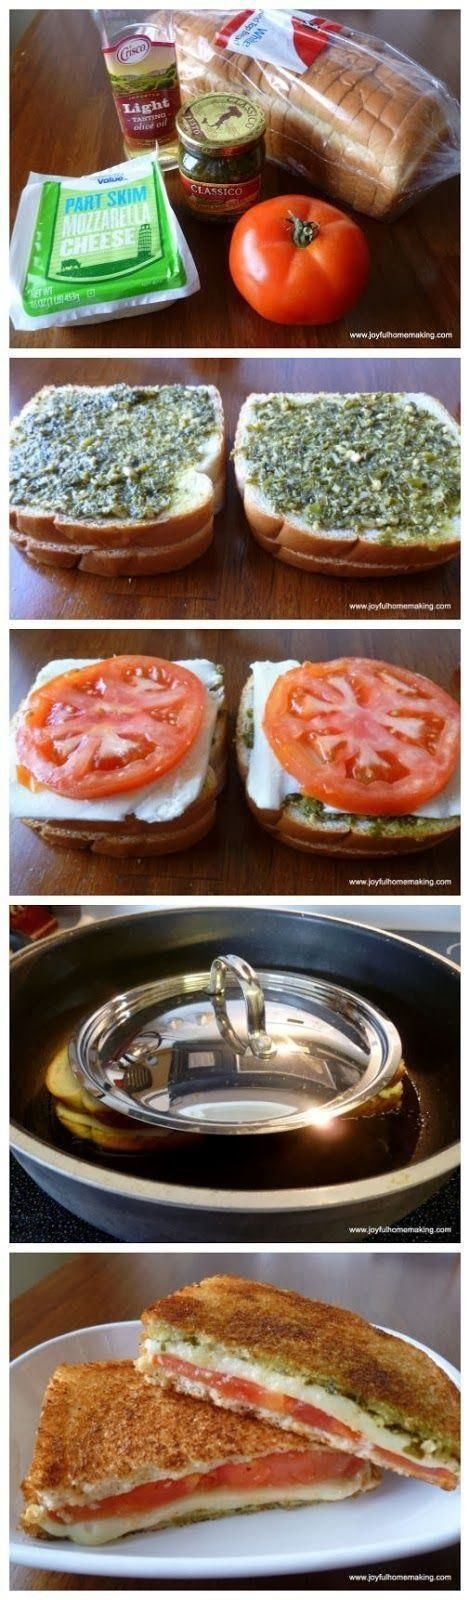 Grilled Cheese with Tomato and Pesto ~ Focuseat